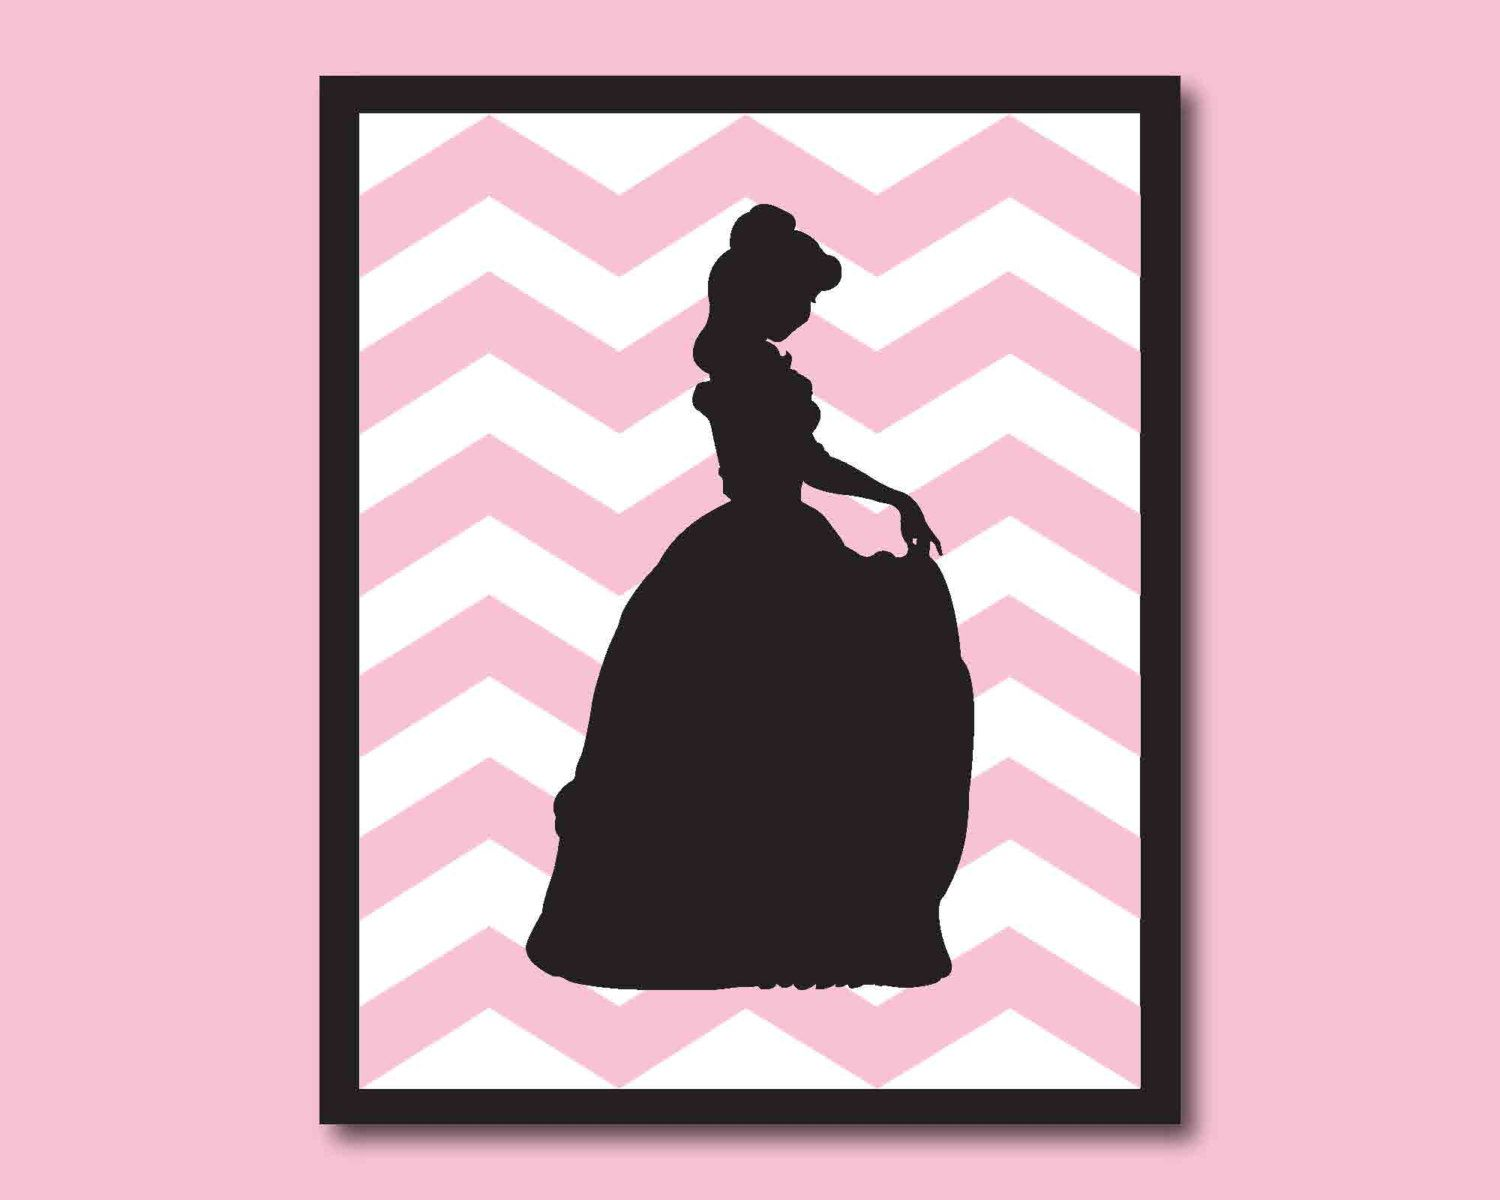 Beauty and the beast belles bedroom - Disney Princess Silhouette Belle From Beauty And The Beast Nursery Or Girls Bedroom Wall